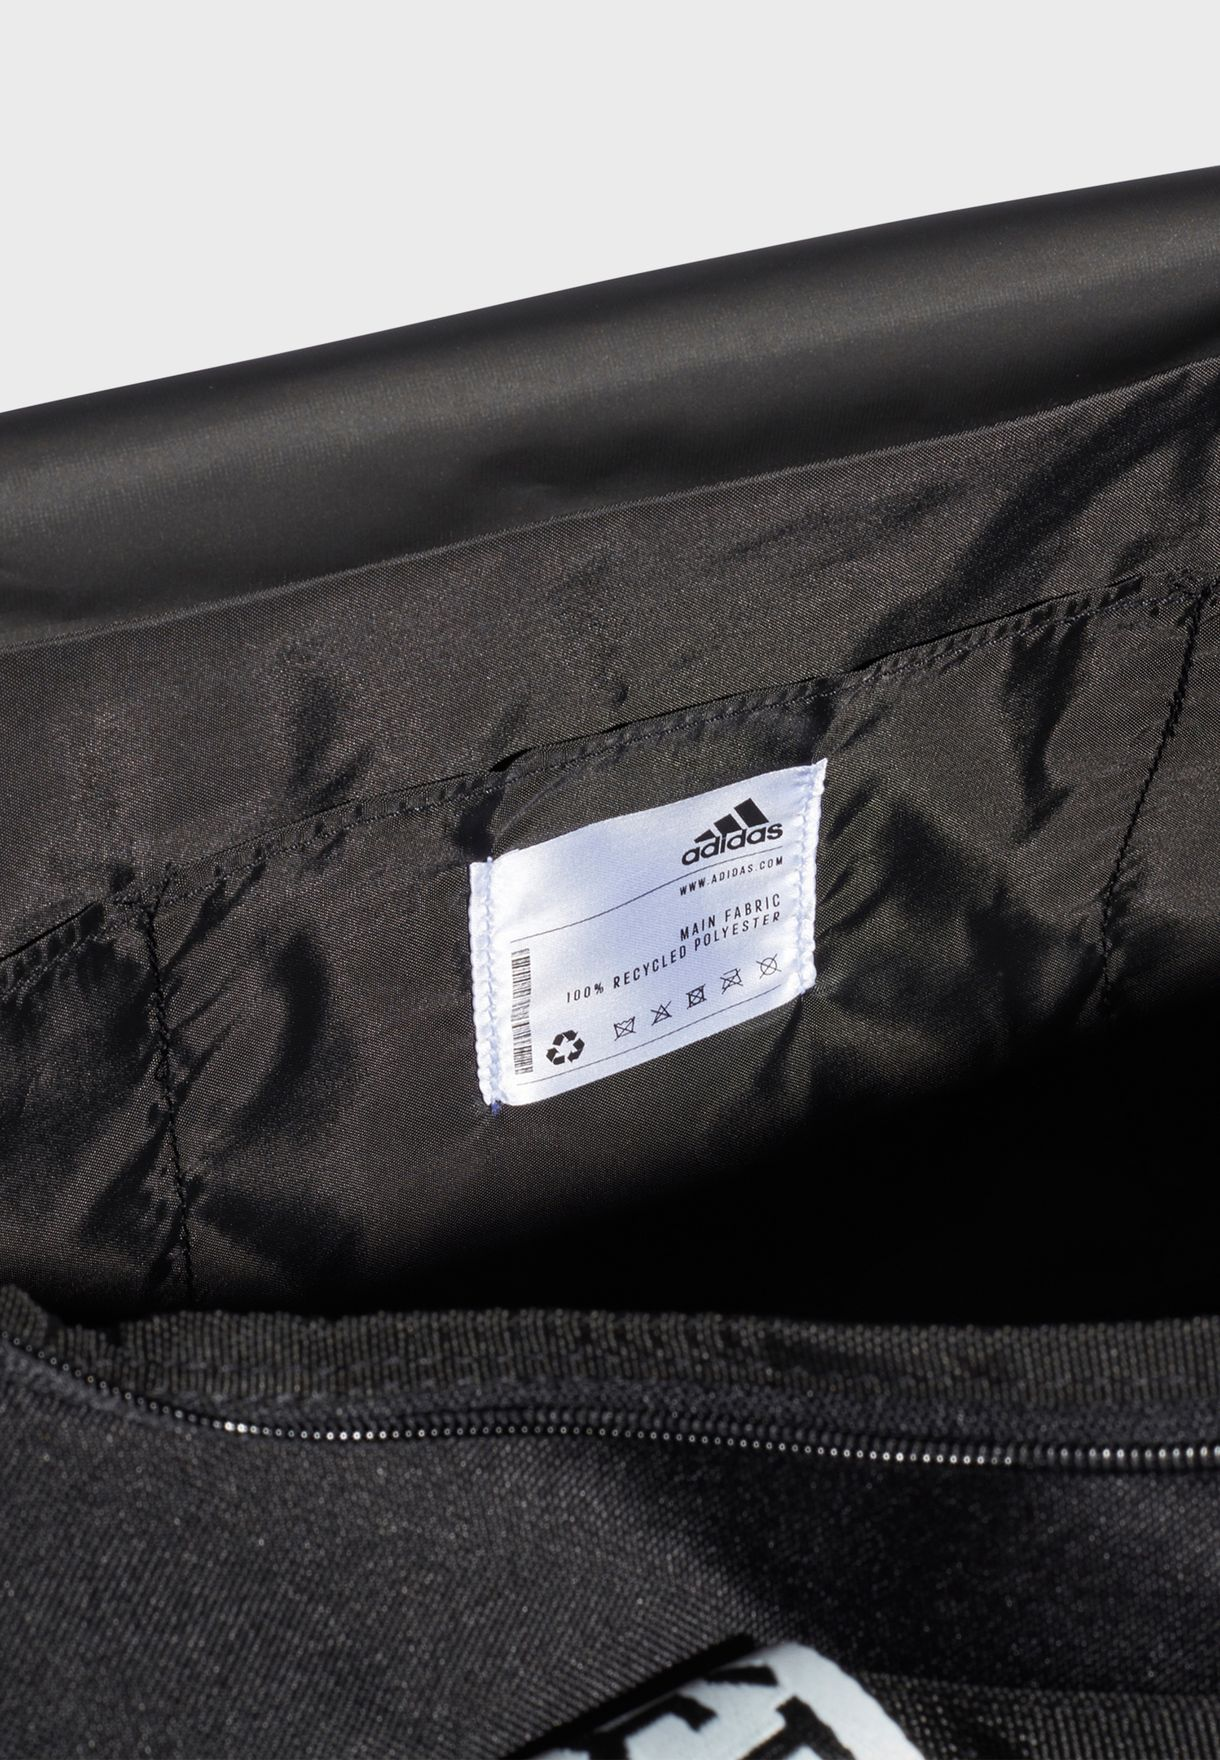 Medium 4Athletes Duffel